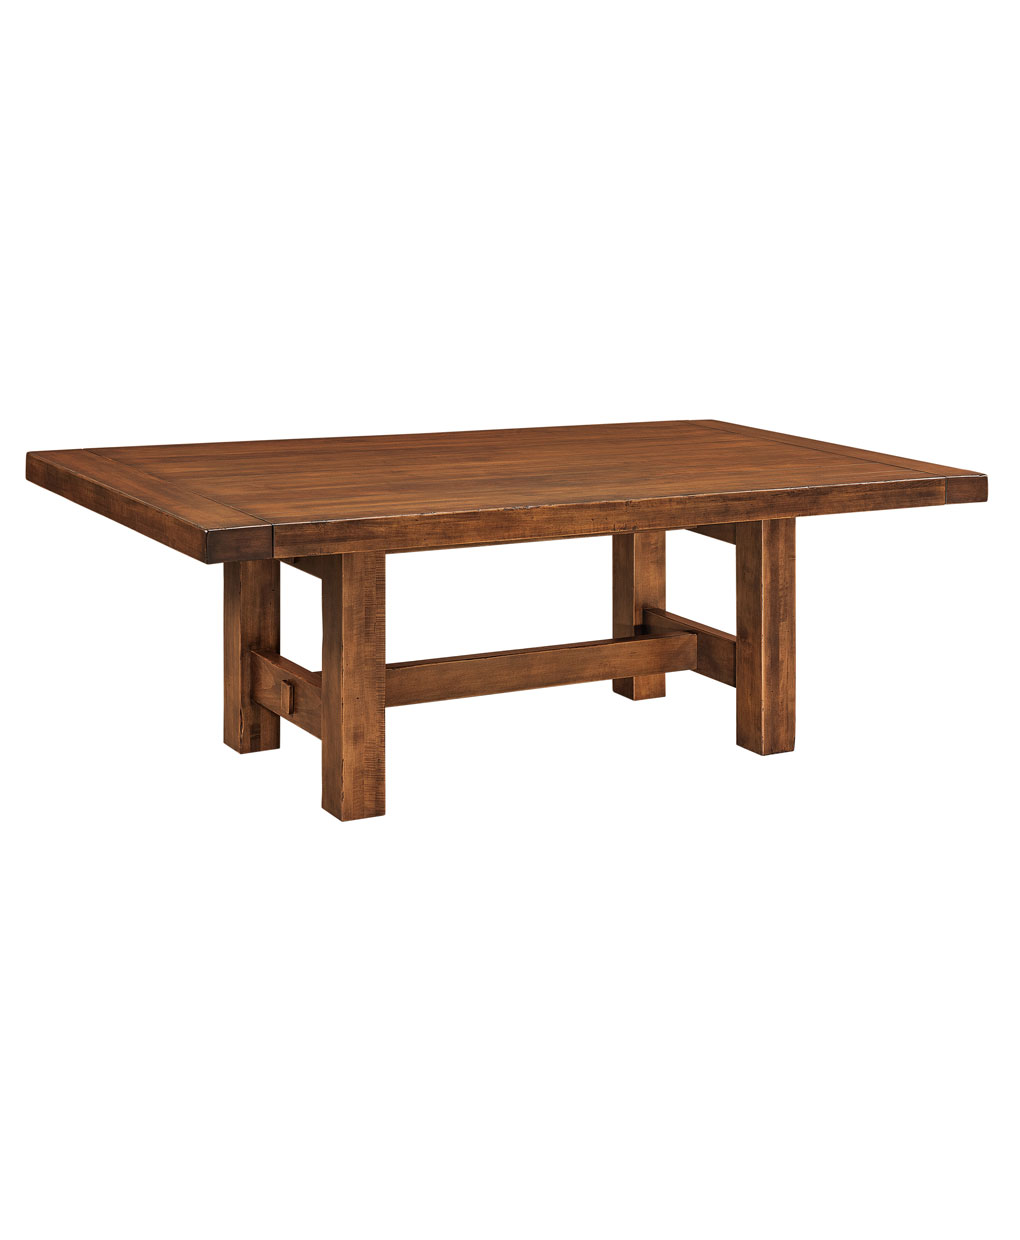 Design Trestle Table wellington trestle table amish direct furniture wilmington table